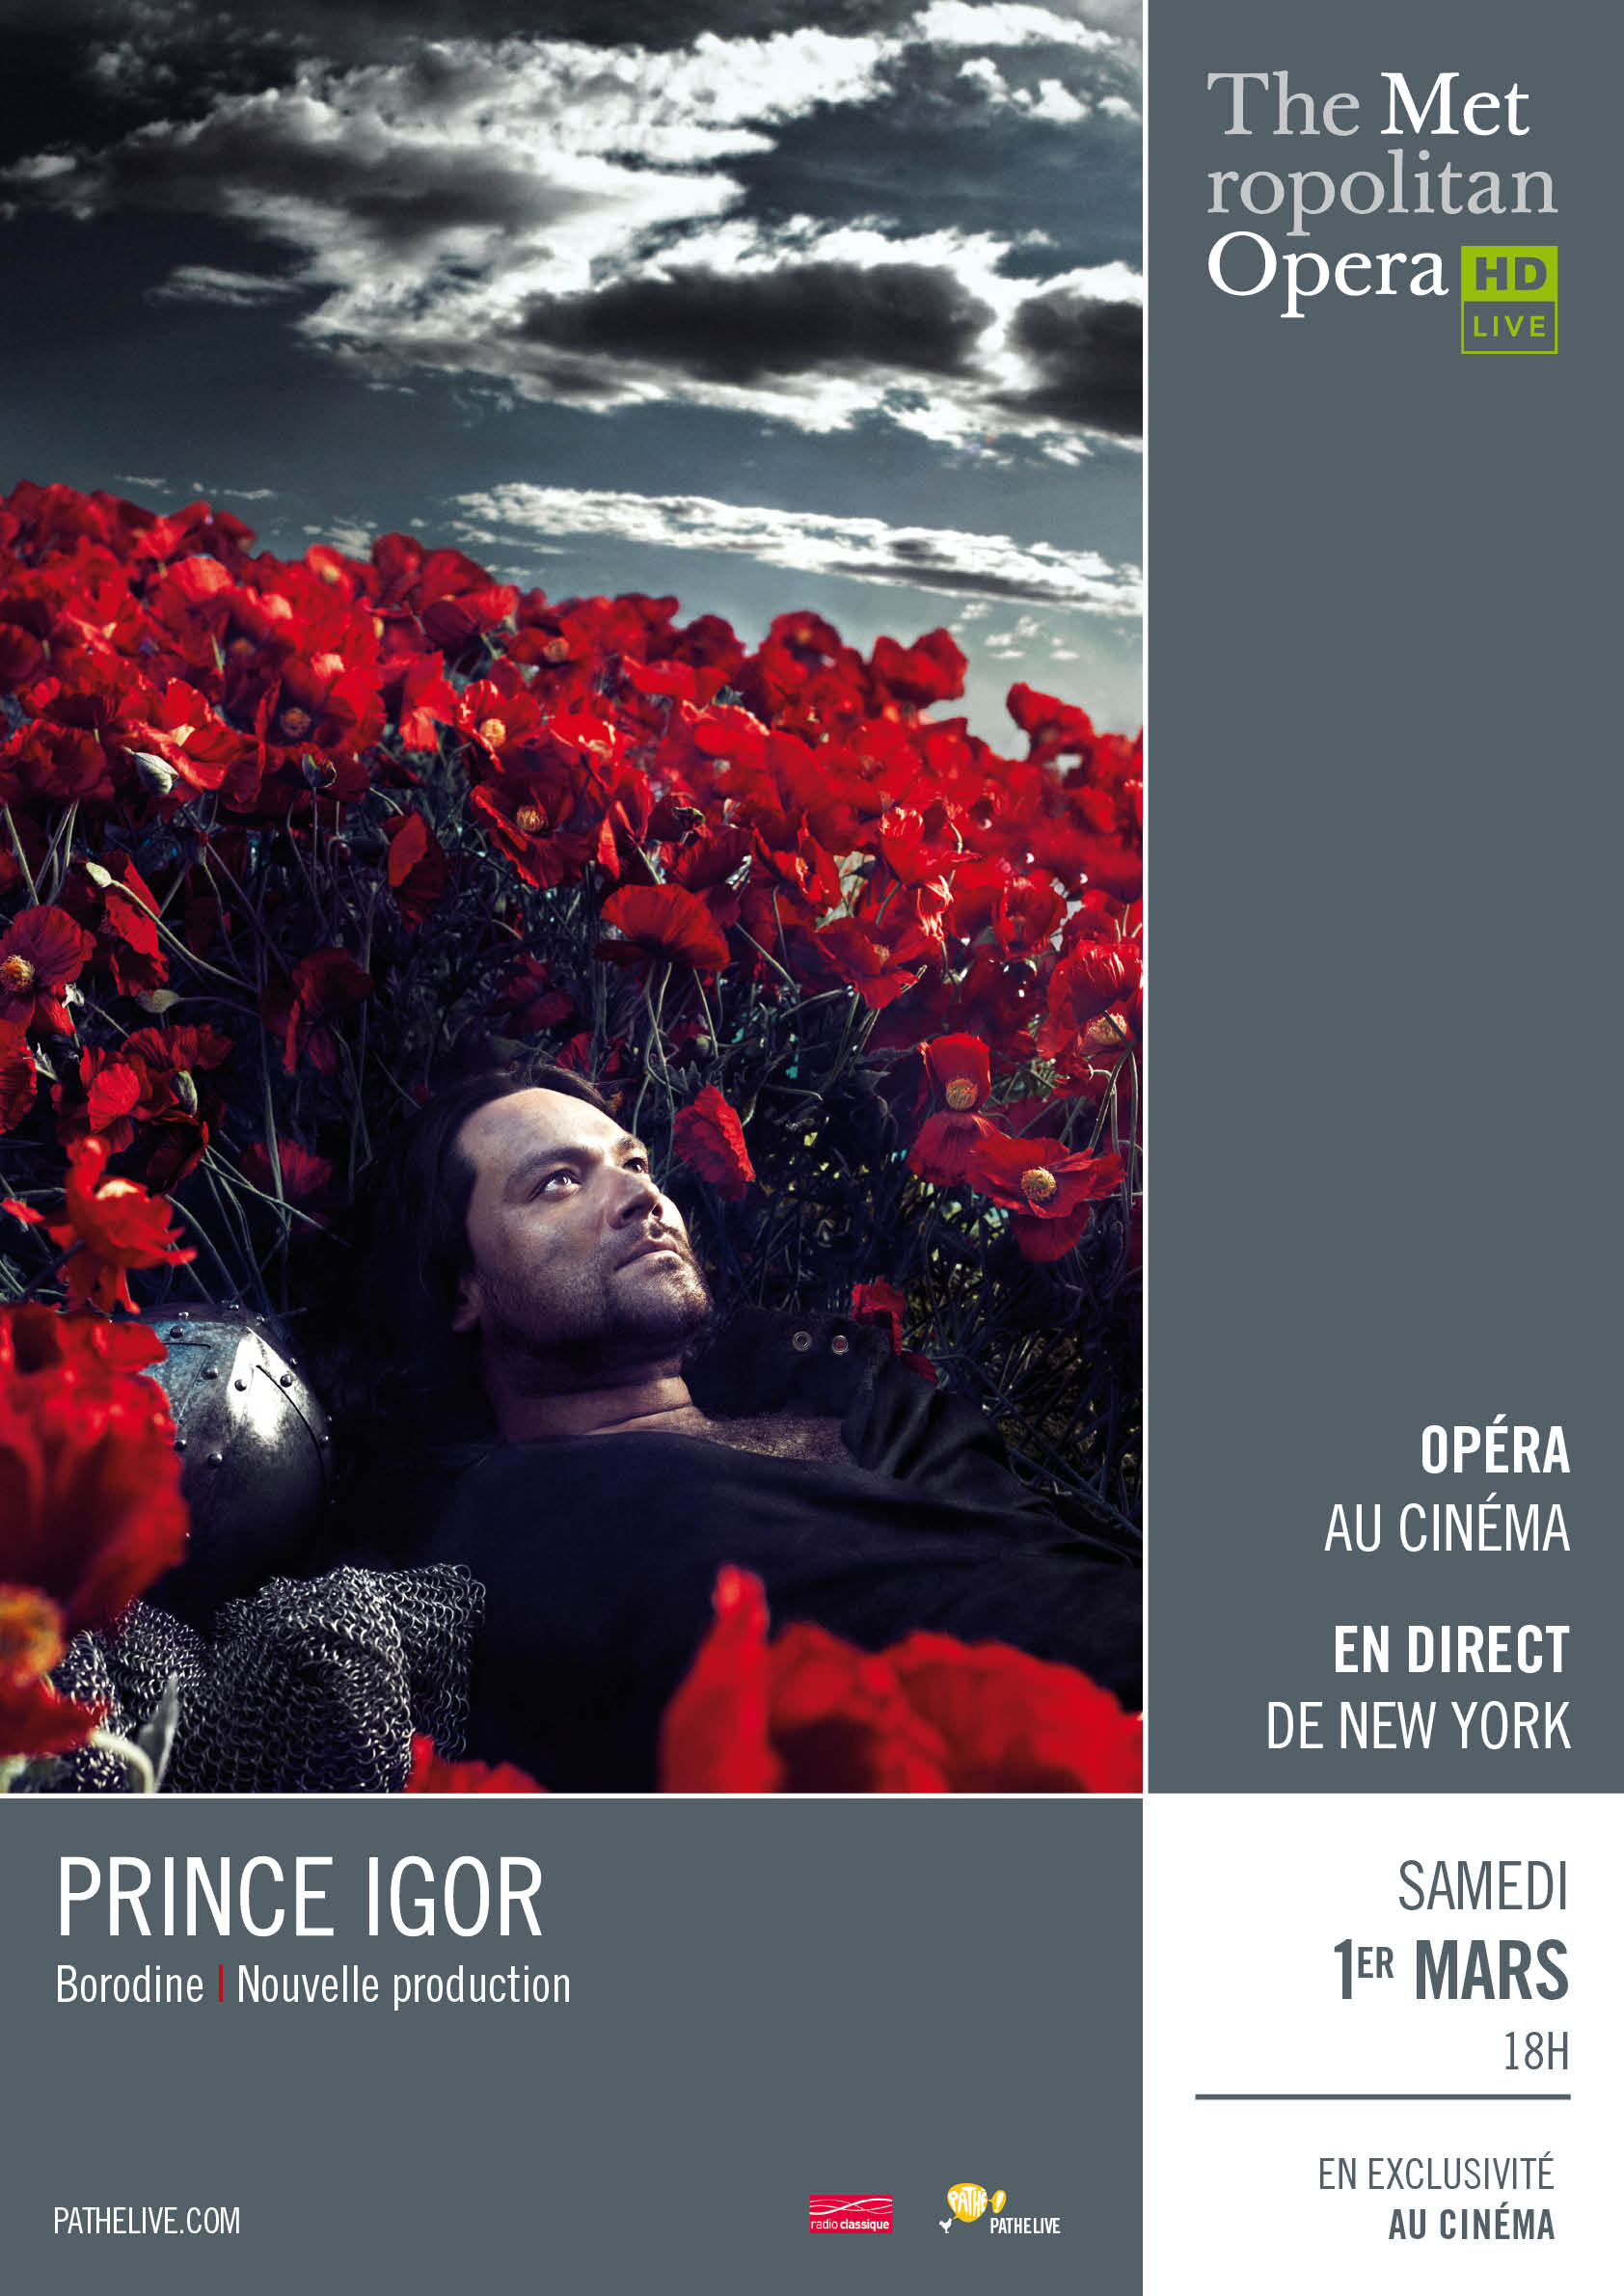 Photo of FOURQUES Retransmission de la pièce « Prince Igor » de Borodine en direct du Métropolitan Opéra de New York ce samedi 1er mars 2014